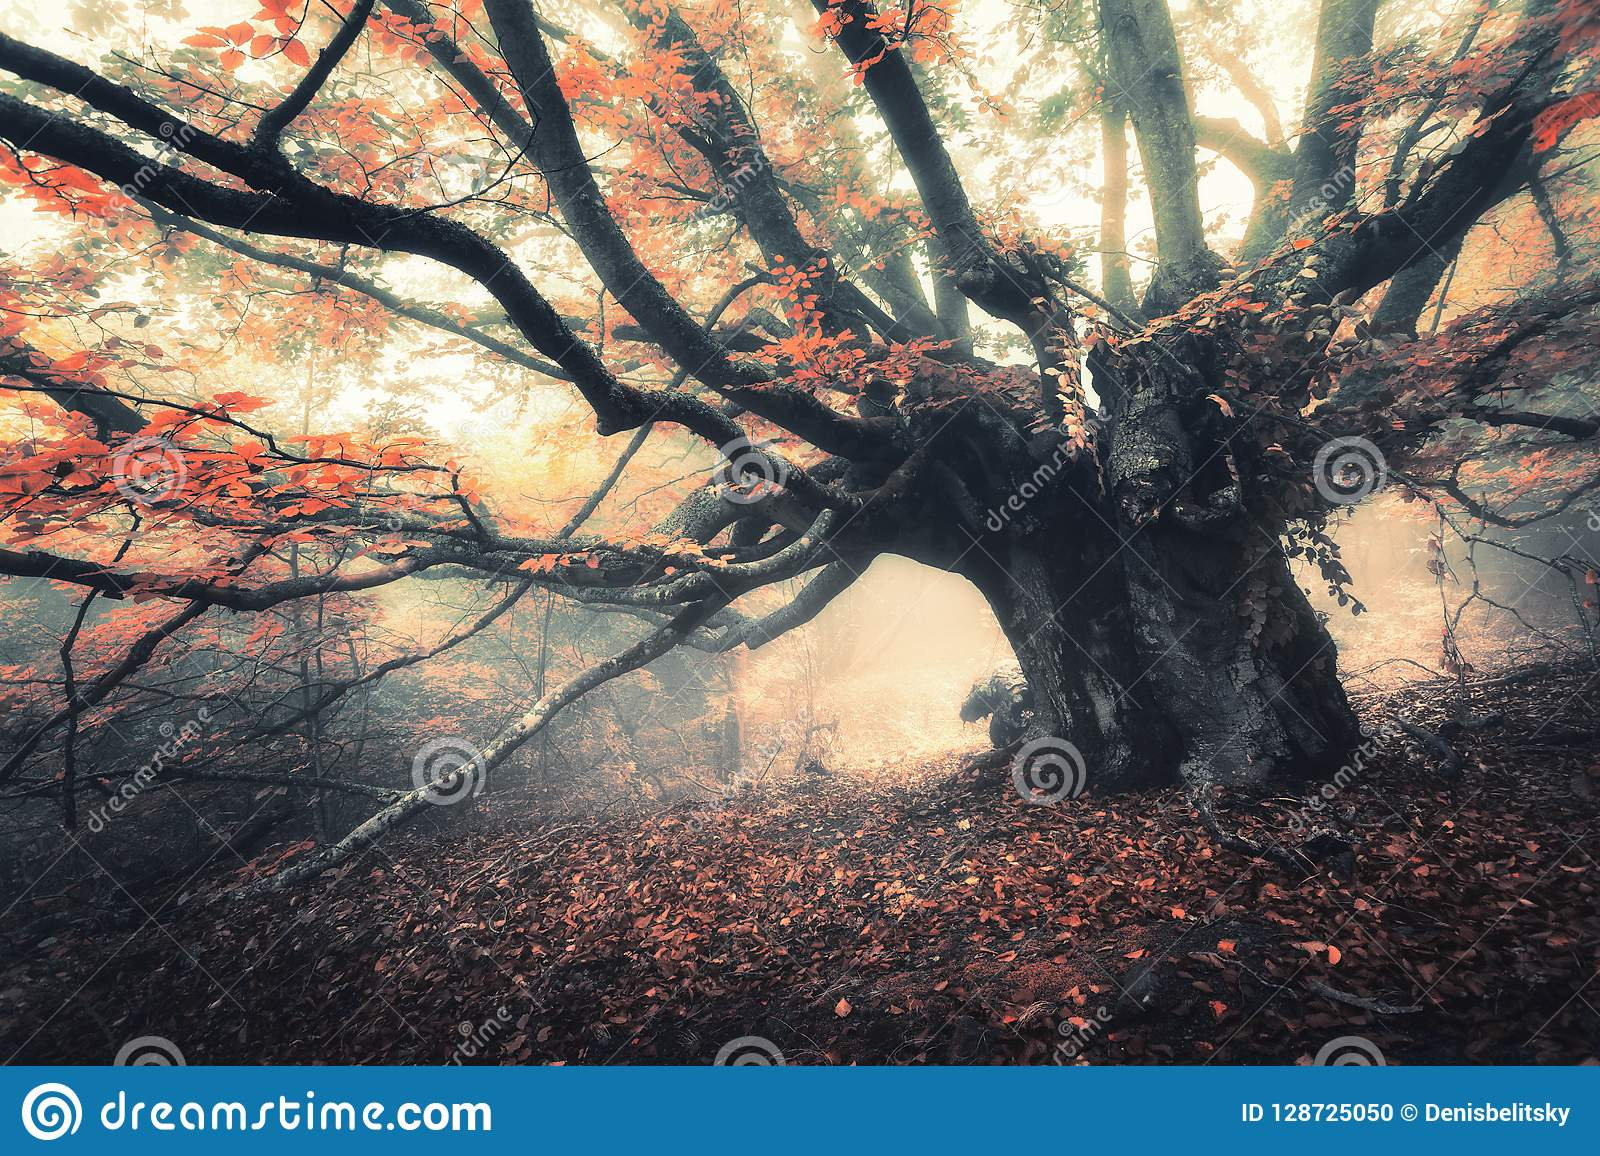 Old magical tree with big branches and orange leaves in fog